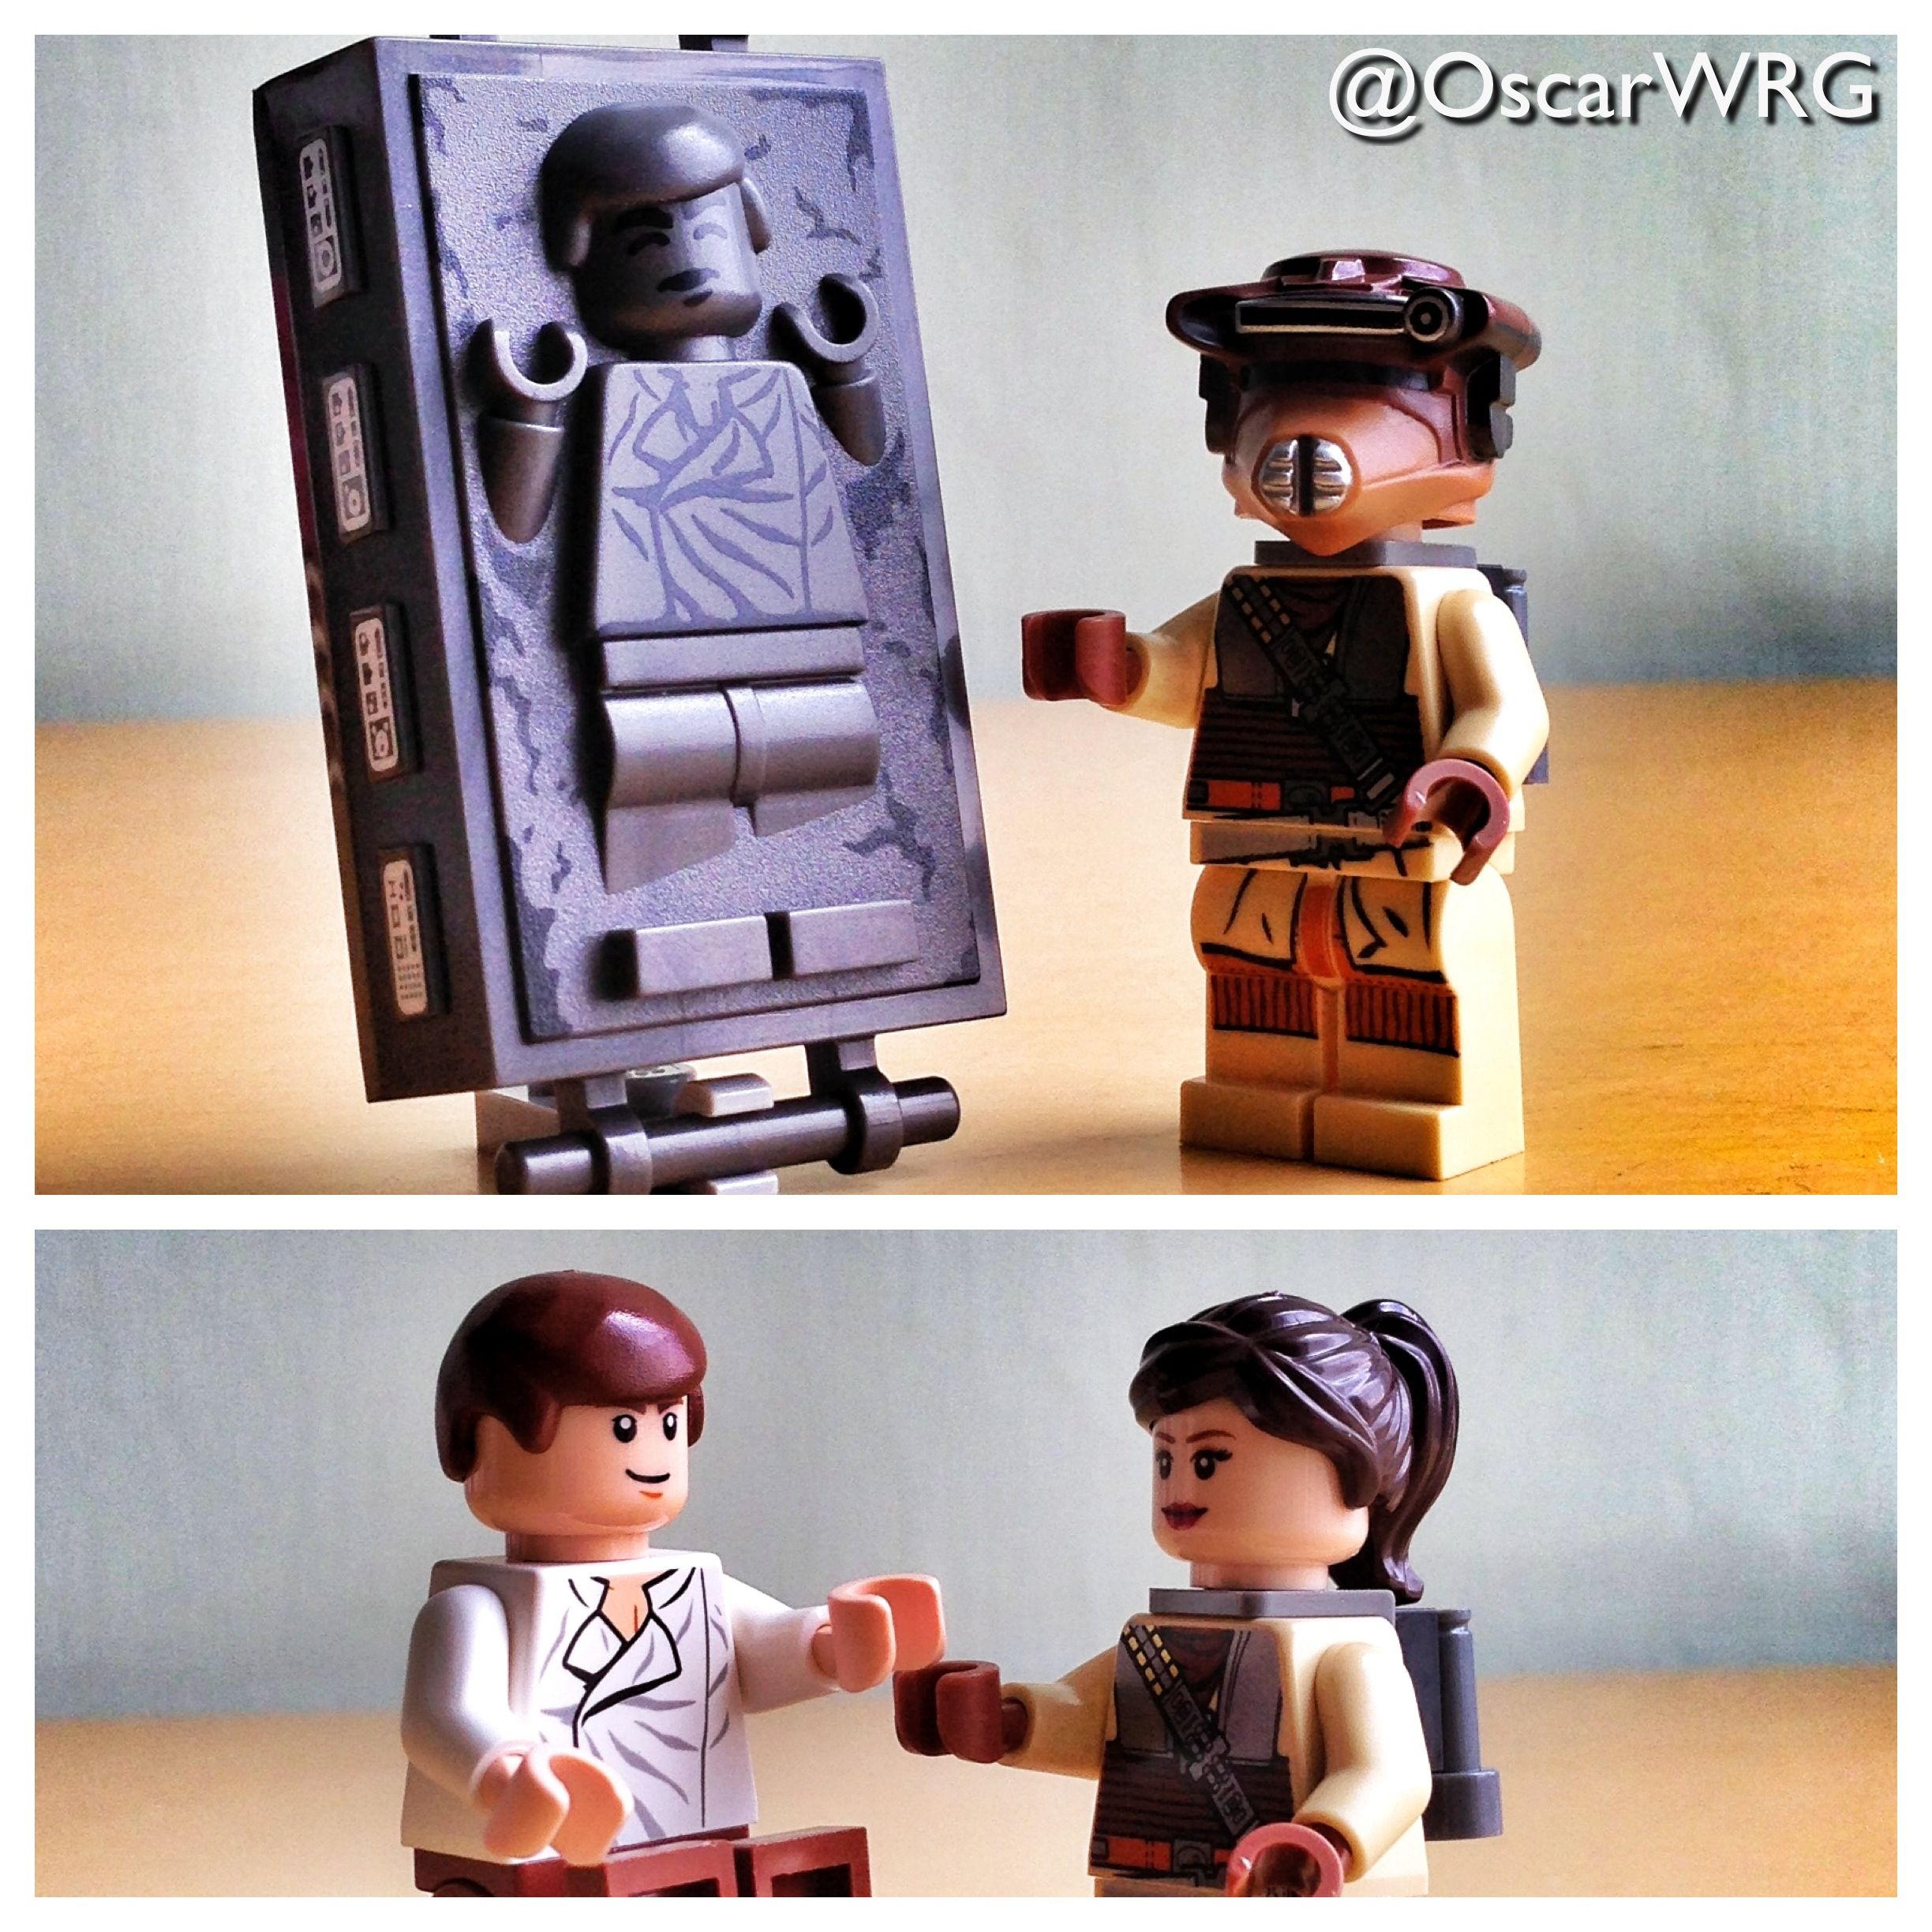 Han Solo In Carbonite And Princess Leia As Boushh LEGO - 25 2 lego star wars minifigures han solo han in carbonite blaster